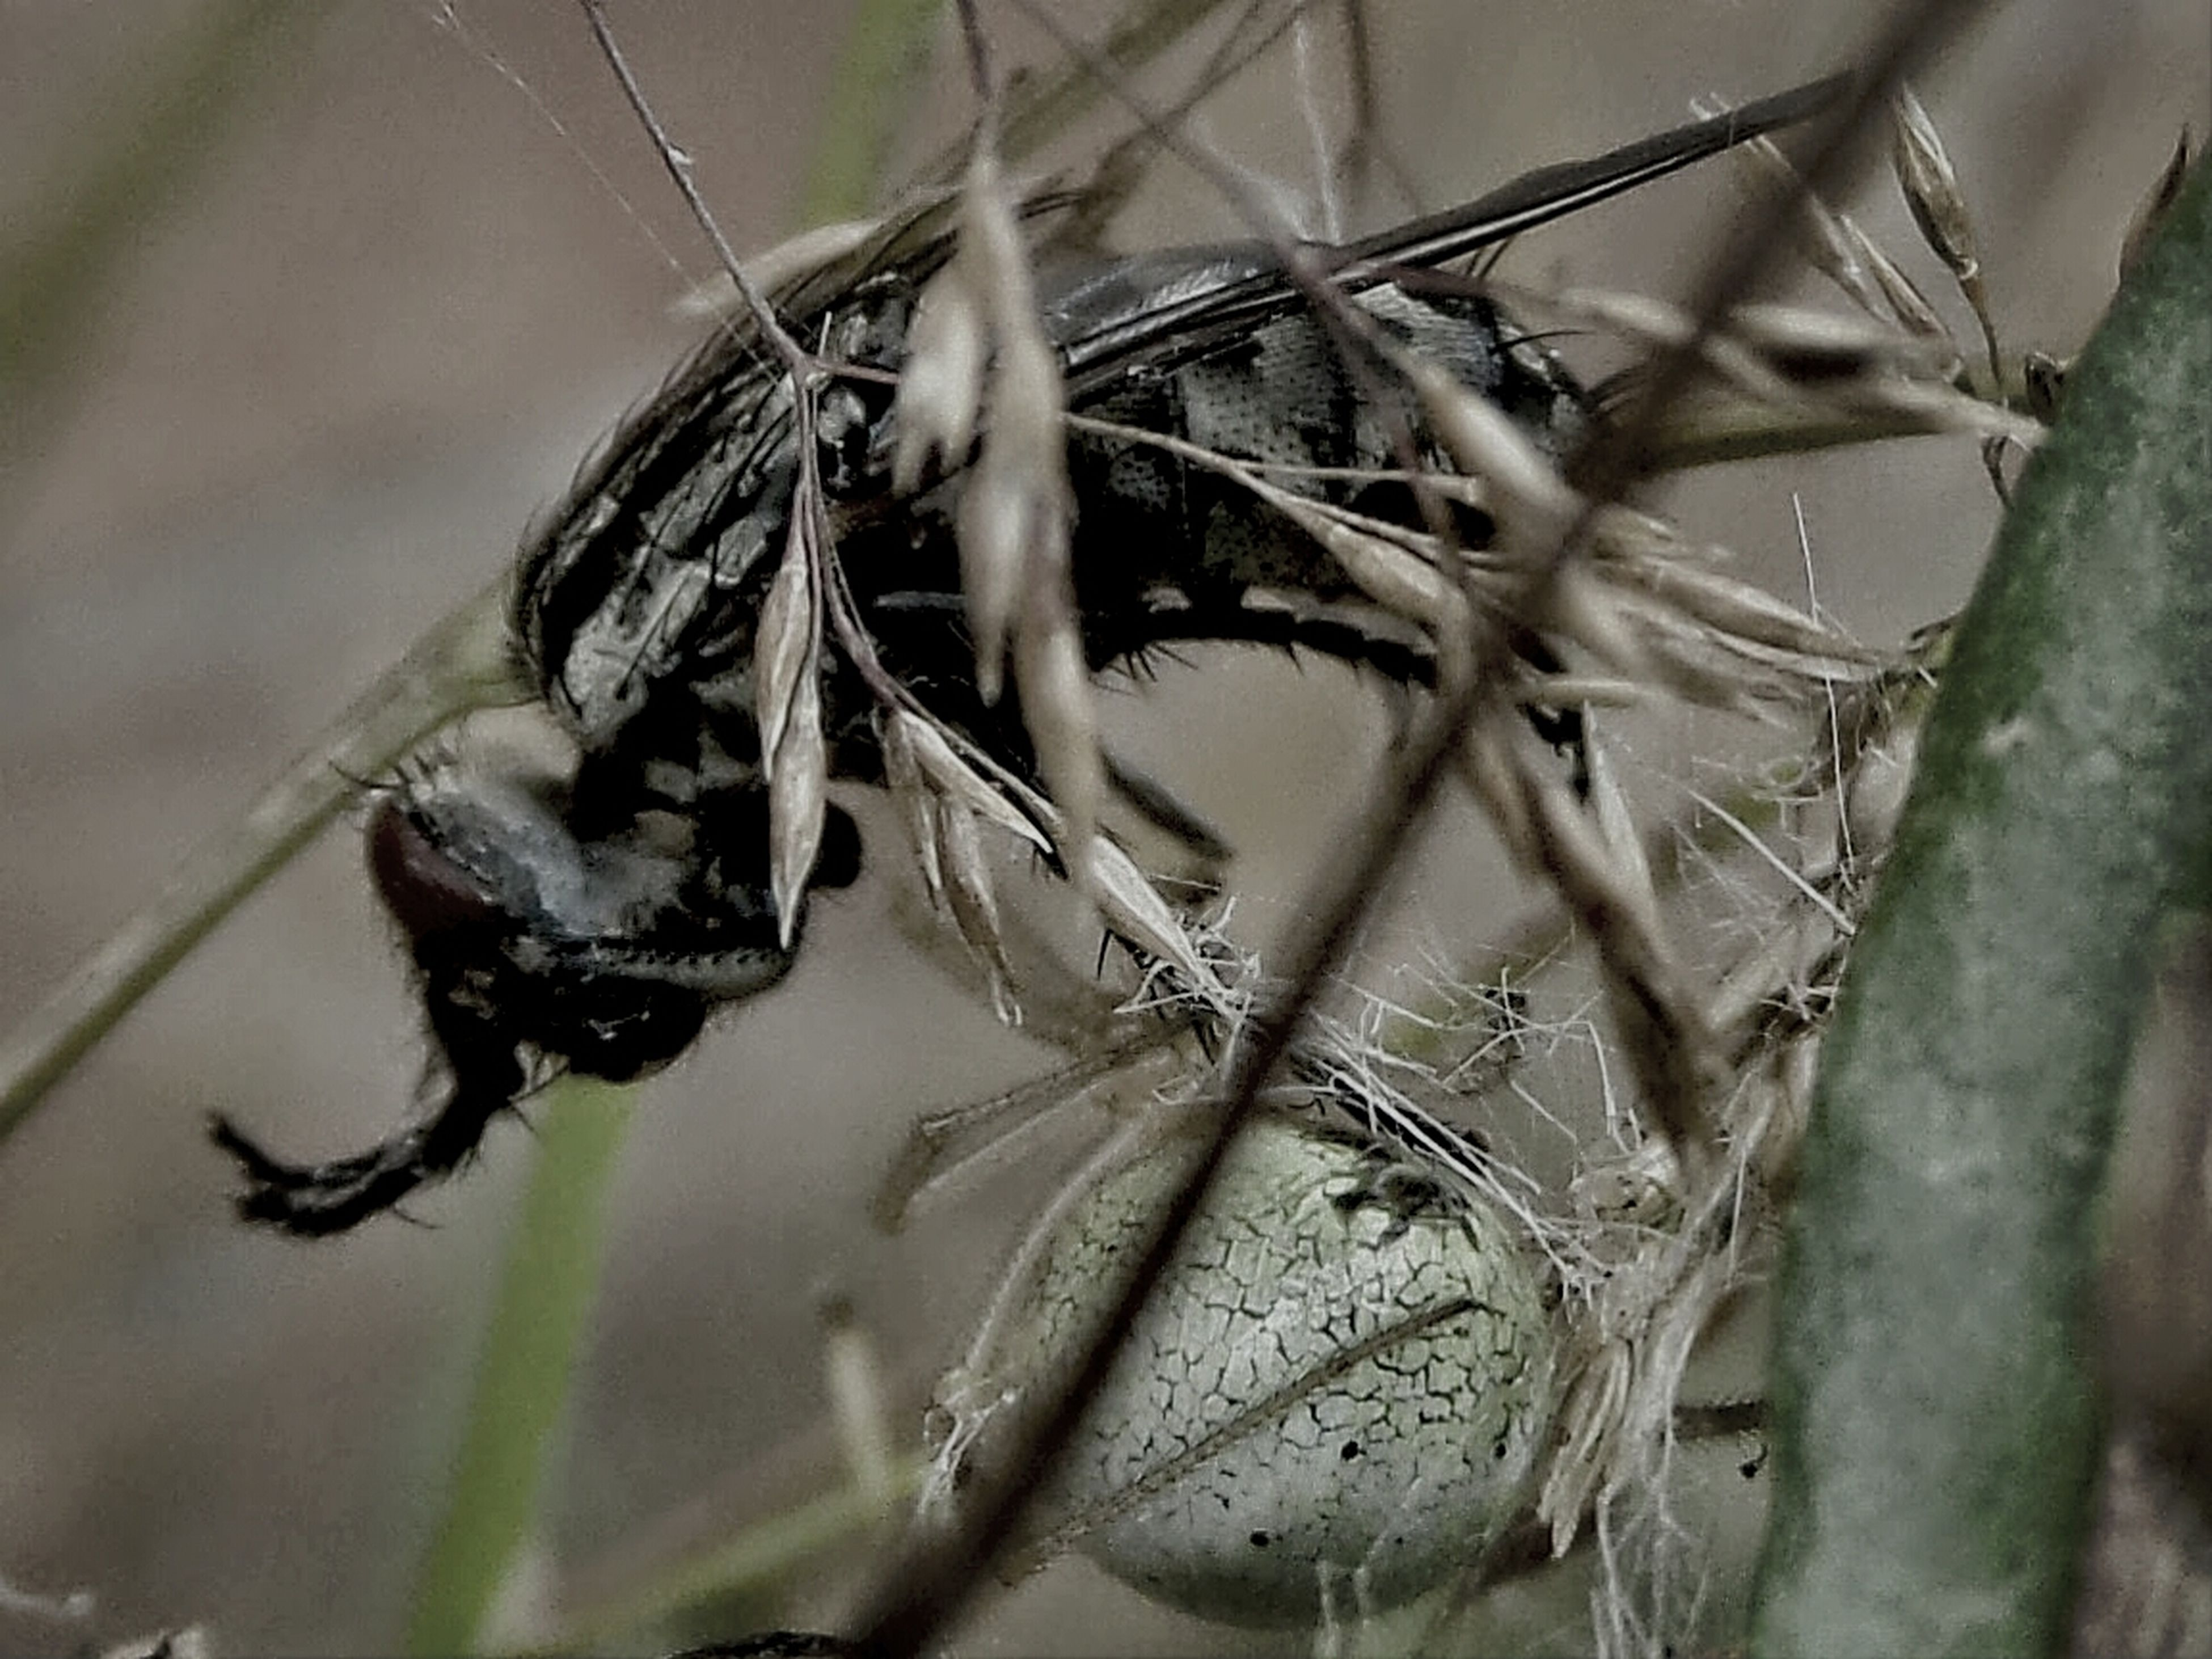 insect, animals in the wild, animal themes, one animal, close-up, wildlife, focus on foreground, selective focus, nature, plant, spider, twig, dry, day, outdoors, no people, dragonfly, spider web, dead plant, stem